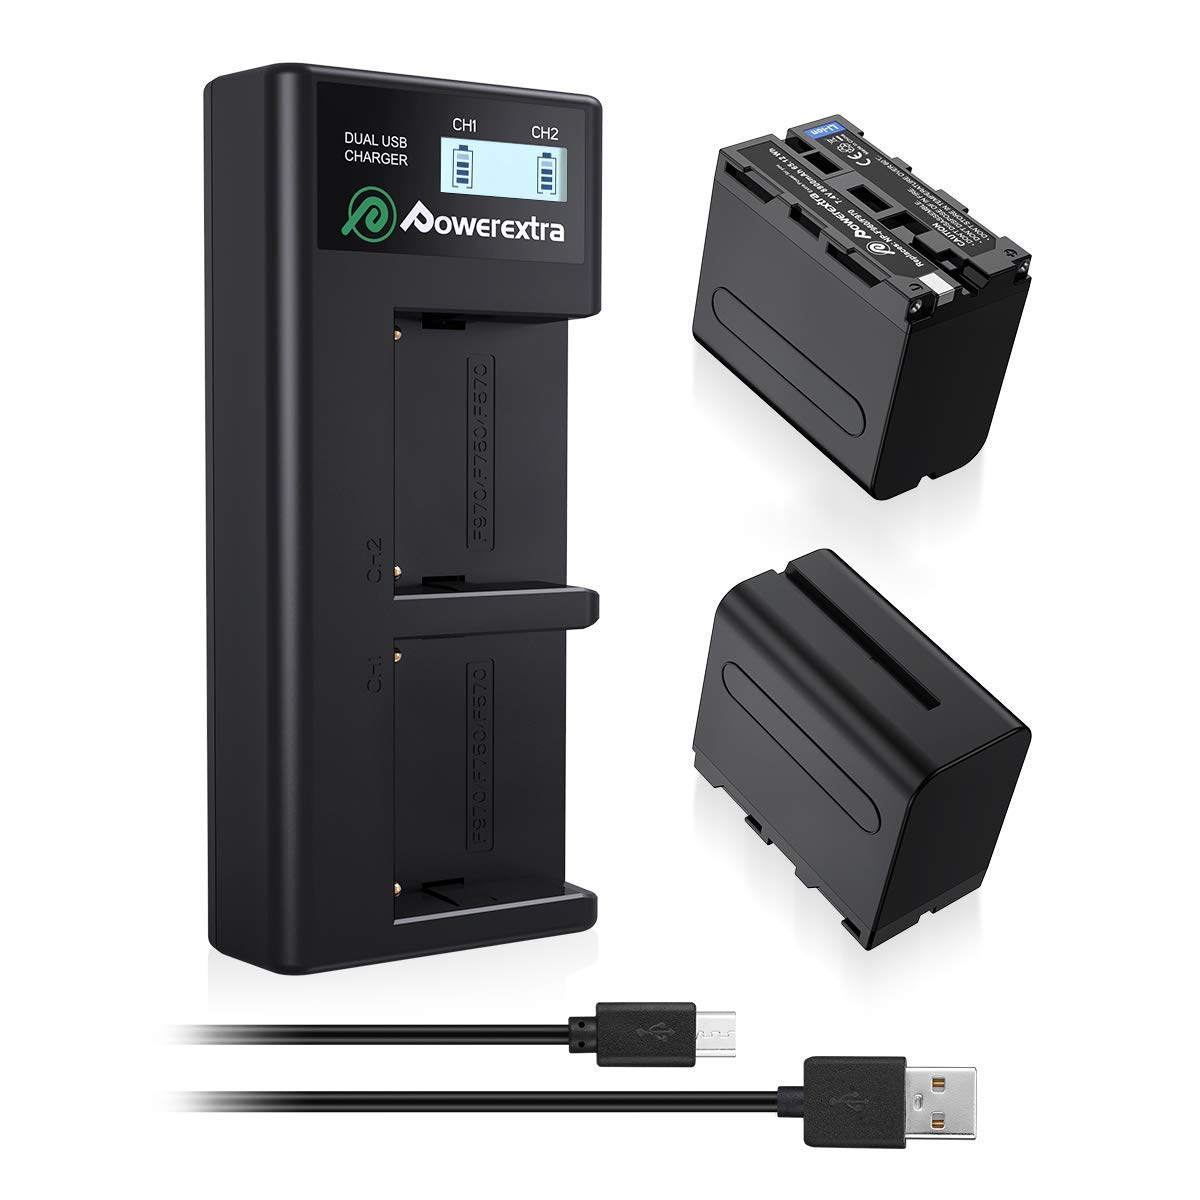 Powerextra 2 Pack Replacement Sony NP-F970 Battery and Smart LCD Display Dual USB Charger for Sony NP-F930 NP-F950 NP-F960 Battery and Sony CCD-SC55, TR516, TR716, TR818, TR910, TR917 by Powerextra (Image #2)